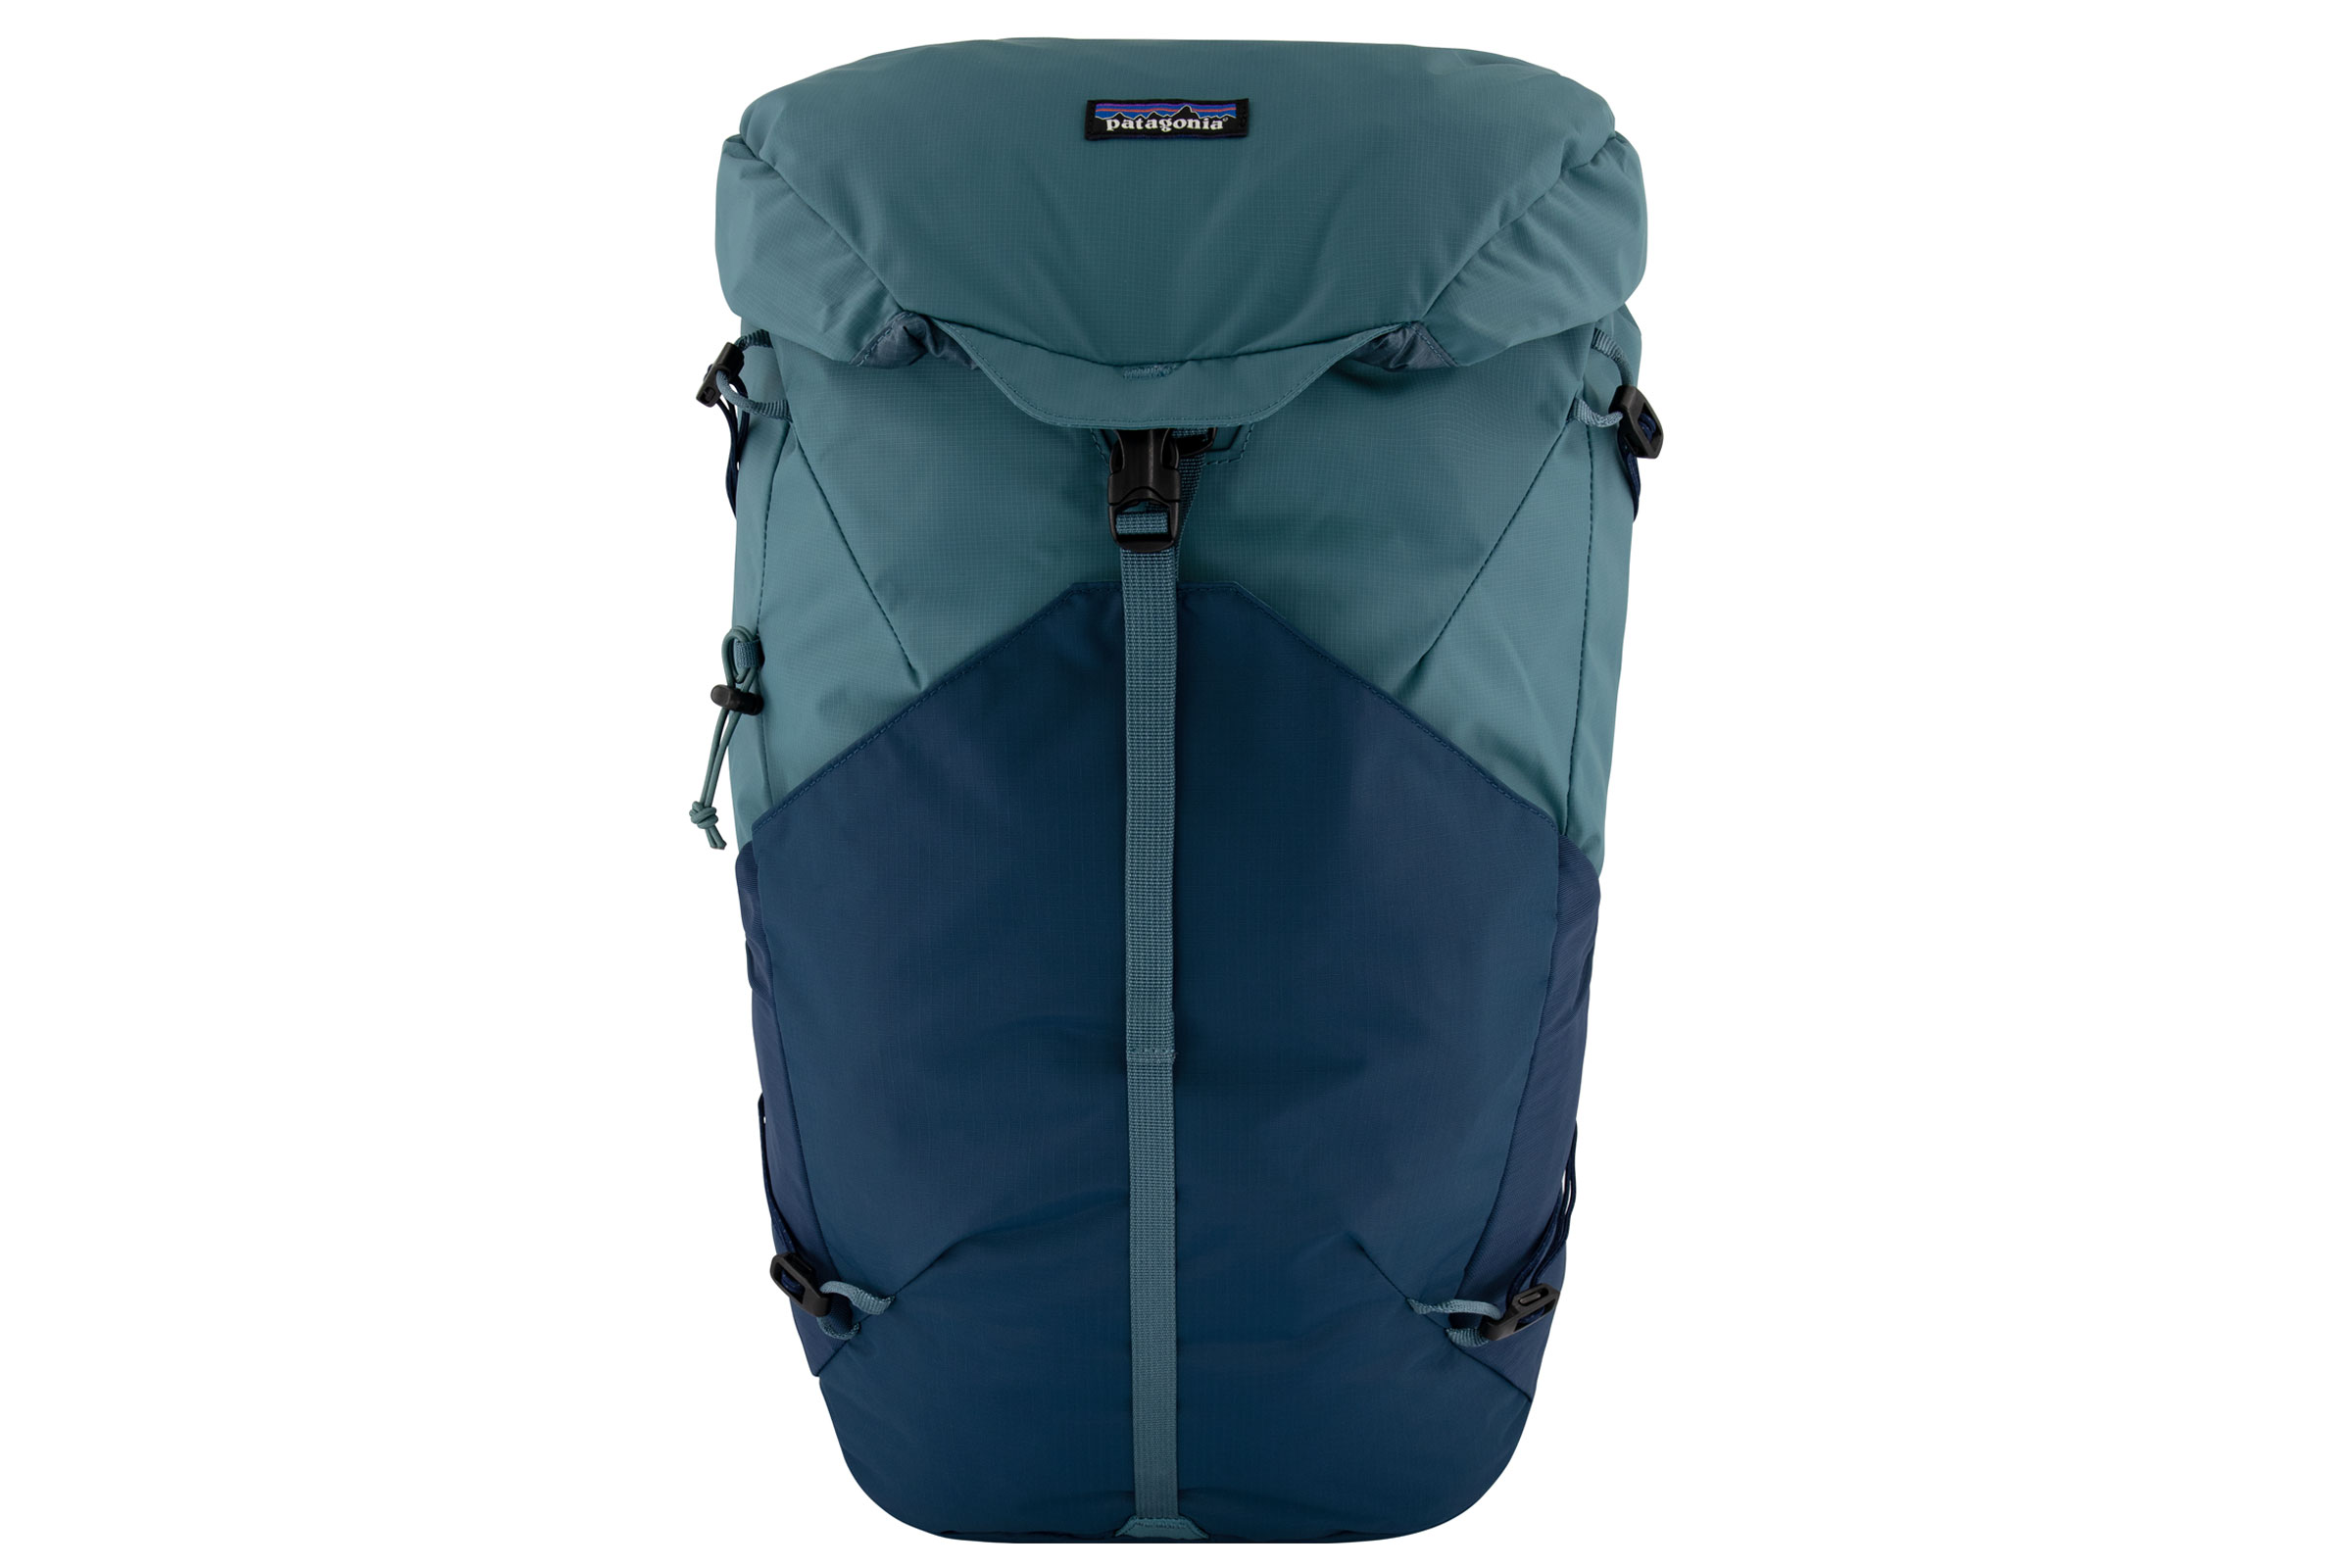 Burrito-Style Hiking Pack: Patagonia Altvia Backpack Review